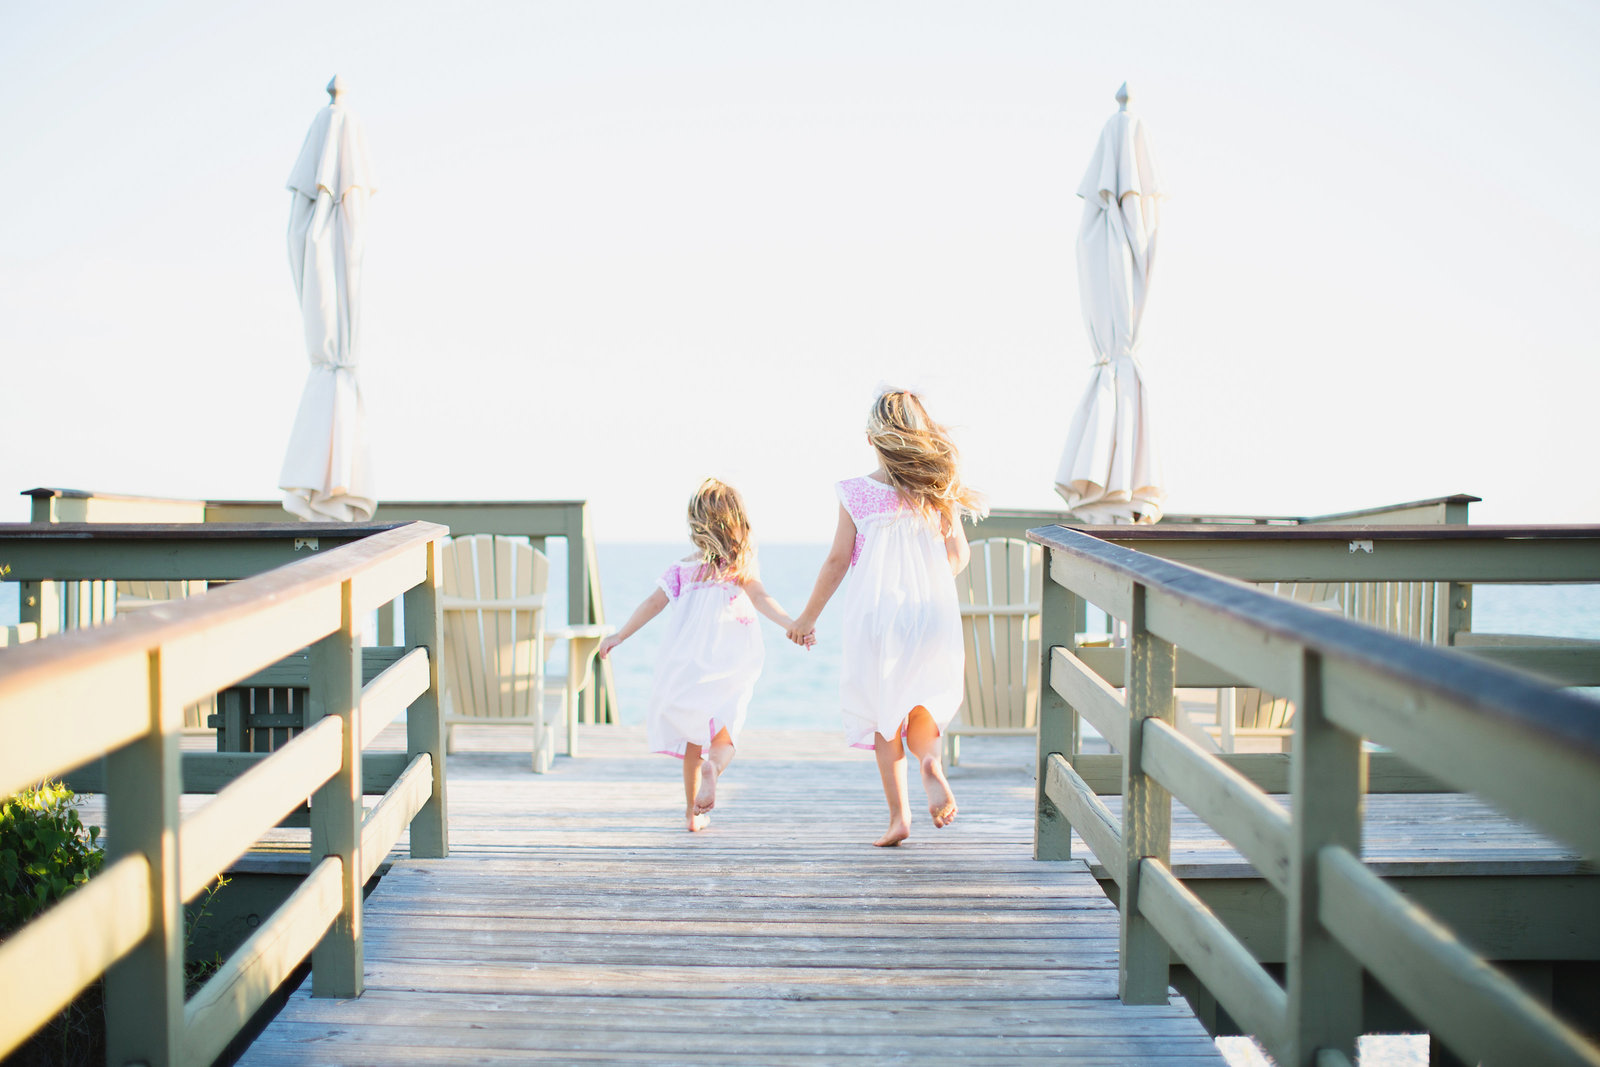 Rosemary Beach Photography Services Families Couples Weddings Kids